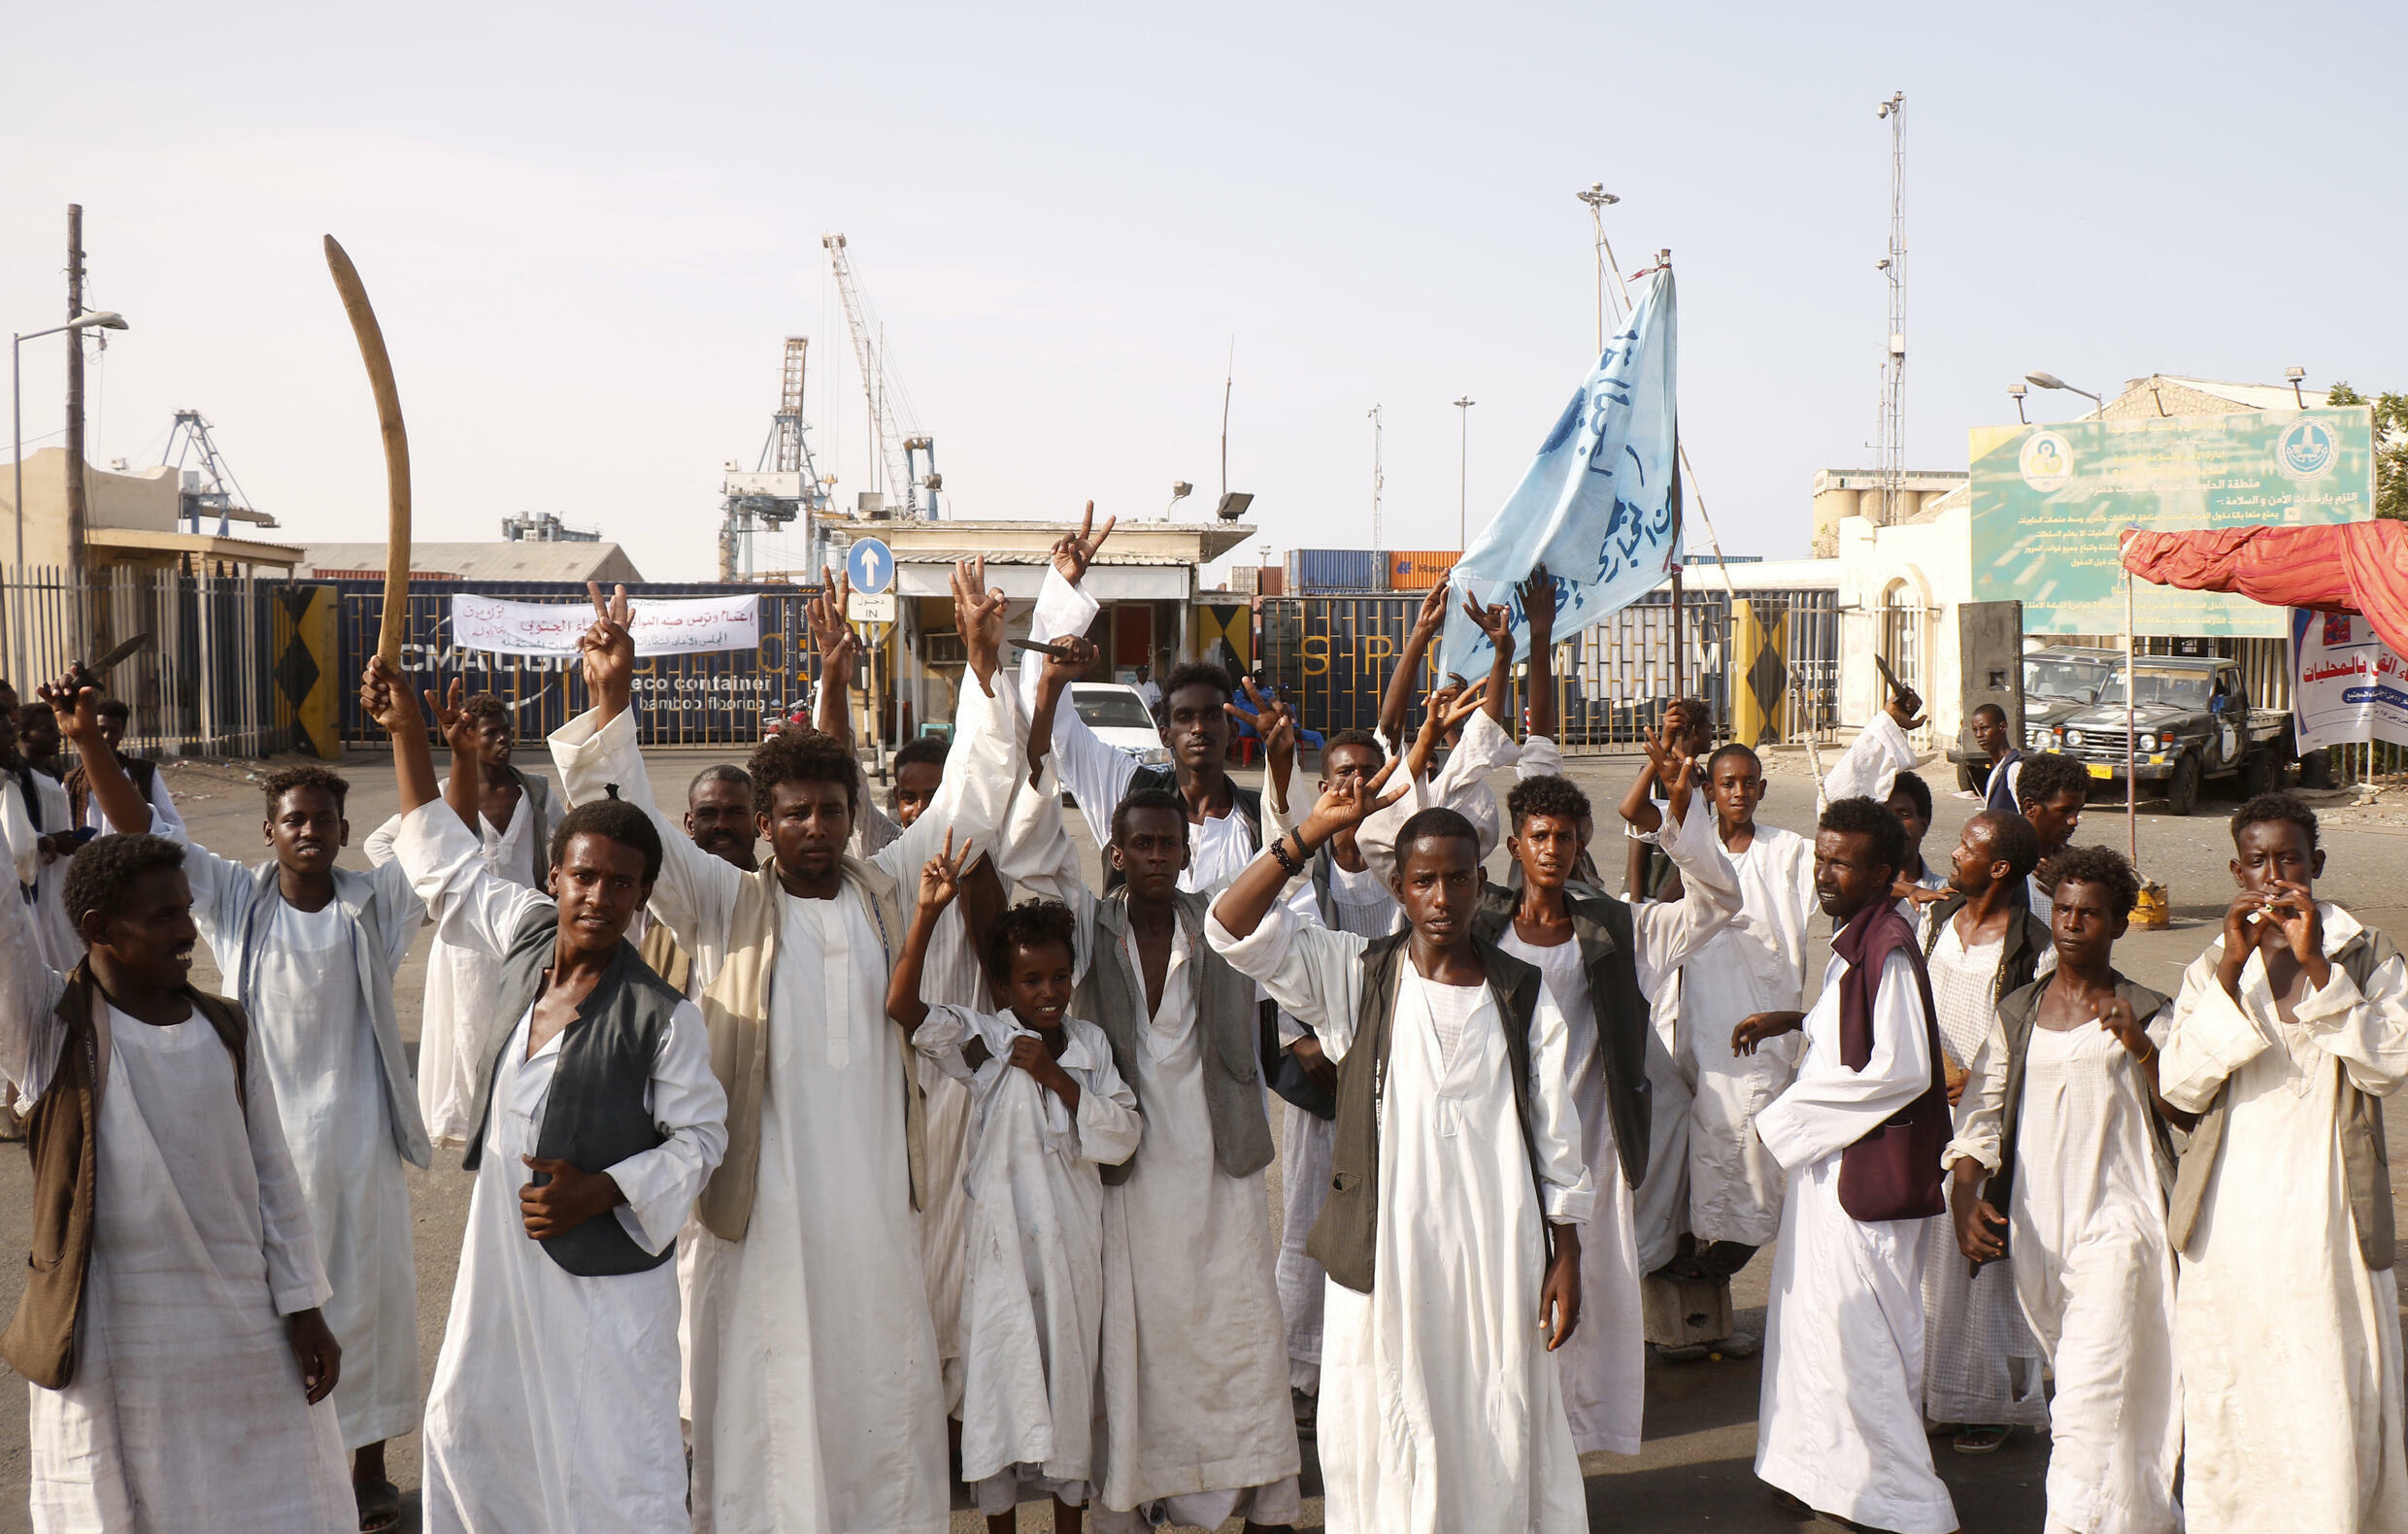 Sudanese protesters have blocked access to the country's main seaport in Port Sudan in protest against a deal between rebel groups and the government they say does not represent them